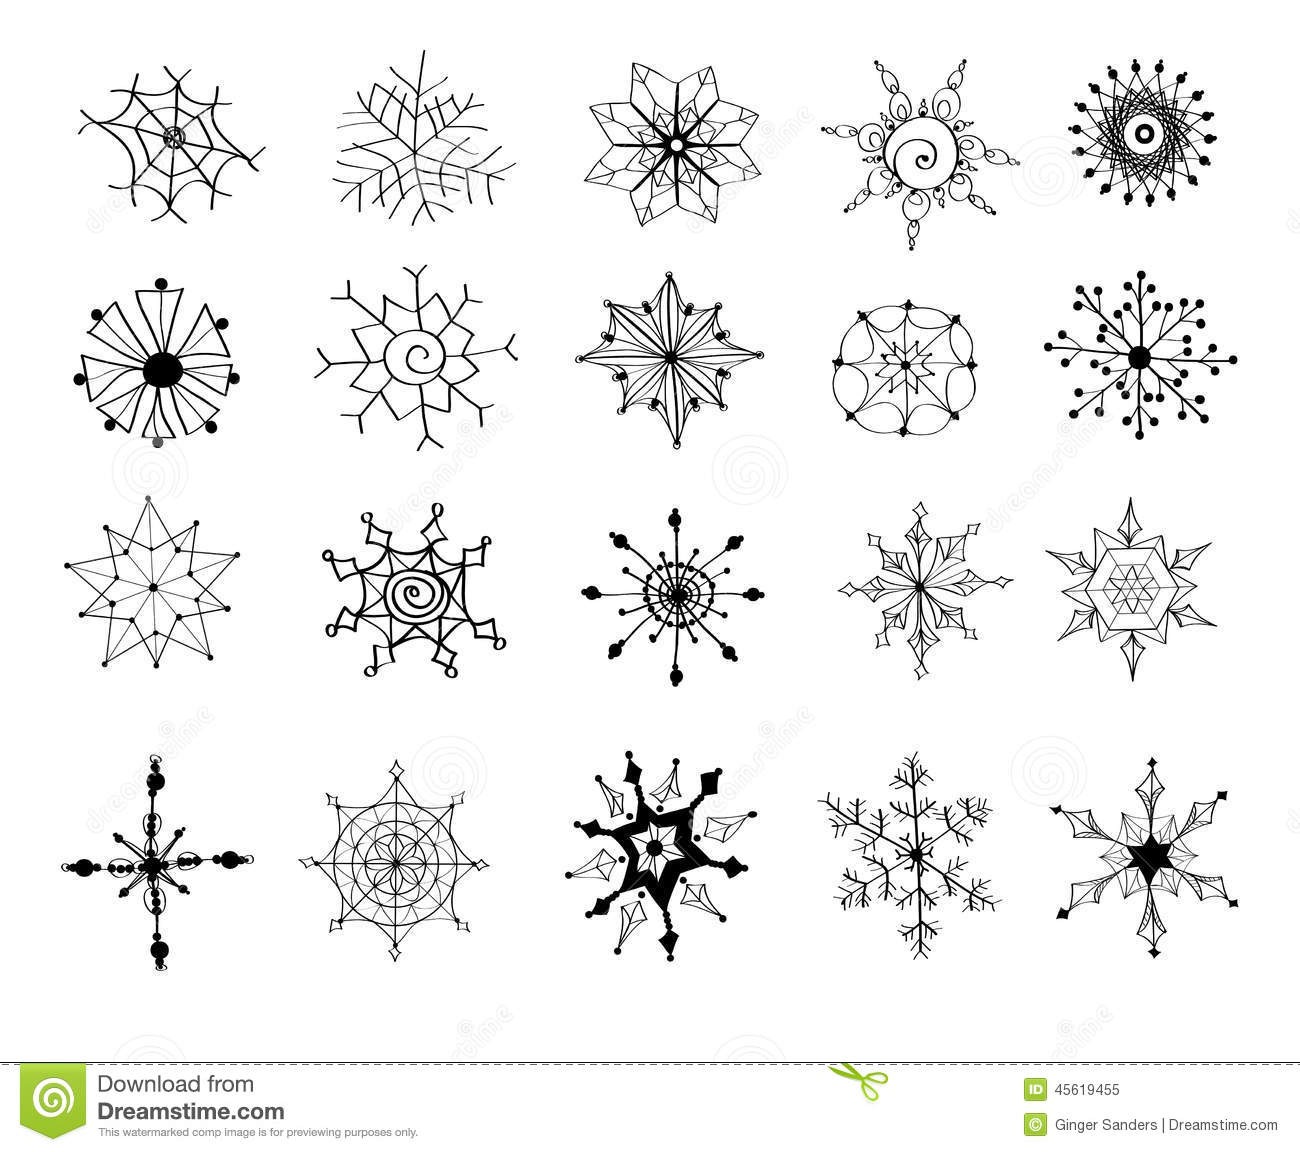 Snowflake Doodle Clip Art Instant Download Snowflakes by Nedti